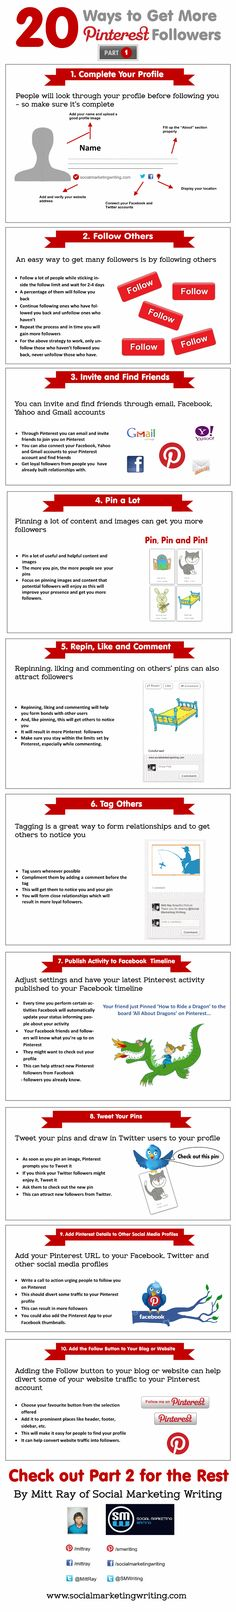 20 Ways To Increase #Pinterest Followers.